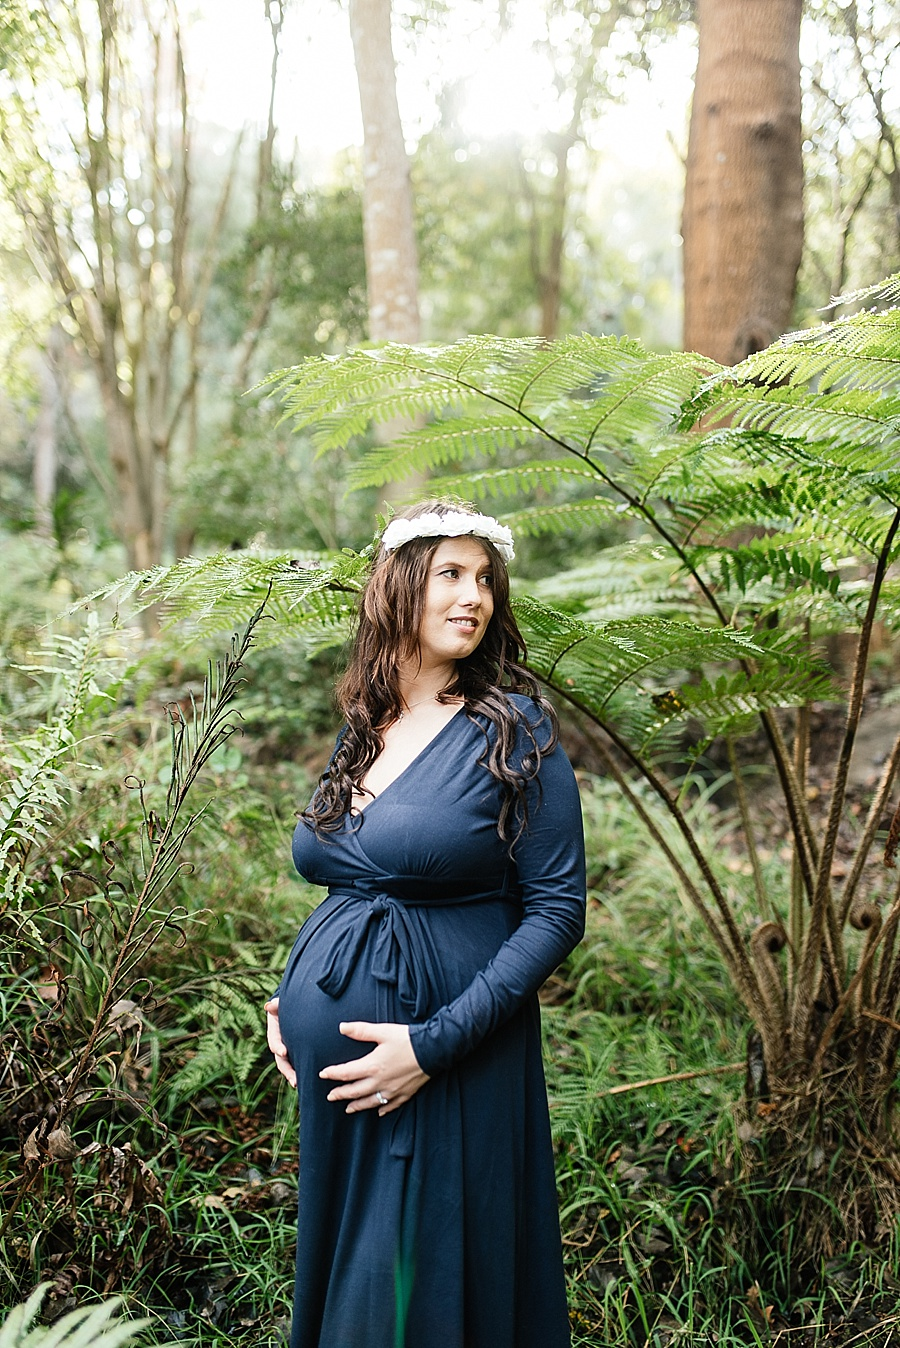 www.darrenbester.co.za - Maternity - Baby Bump - Shirley + Andre_0007.jpg